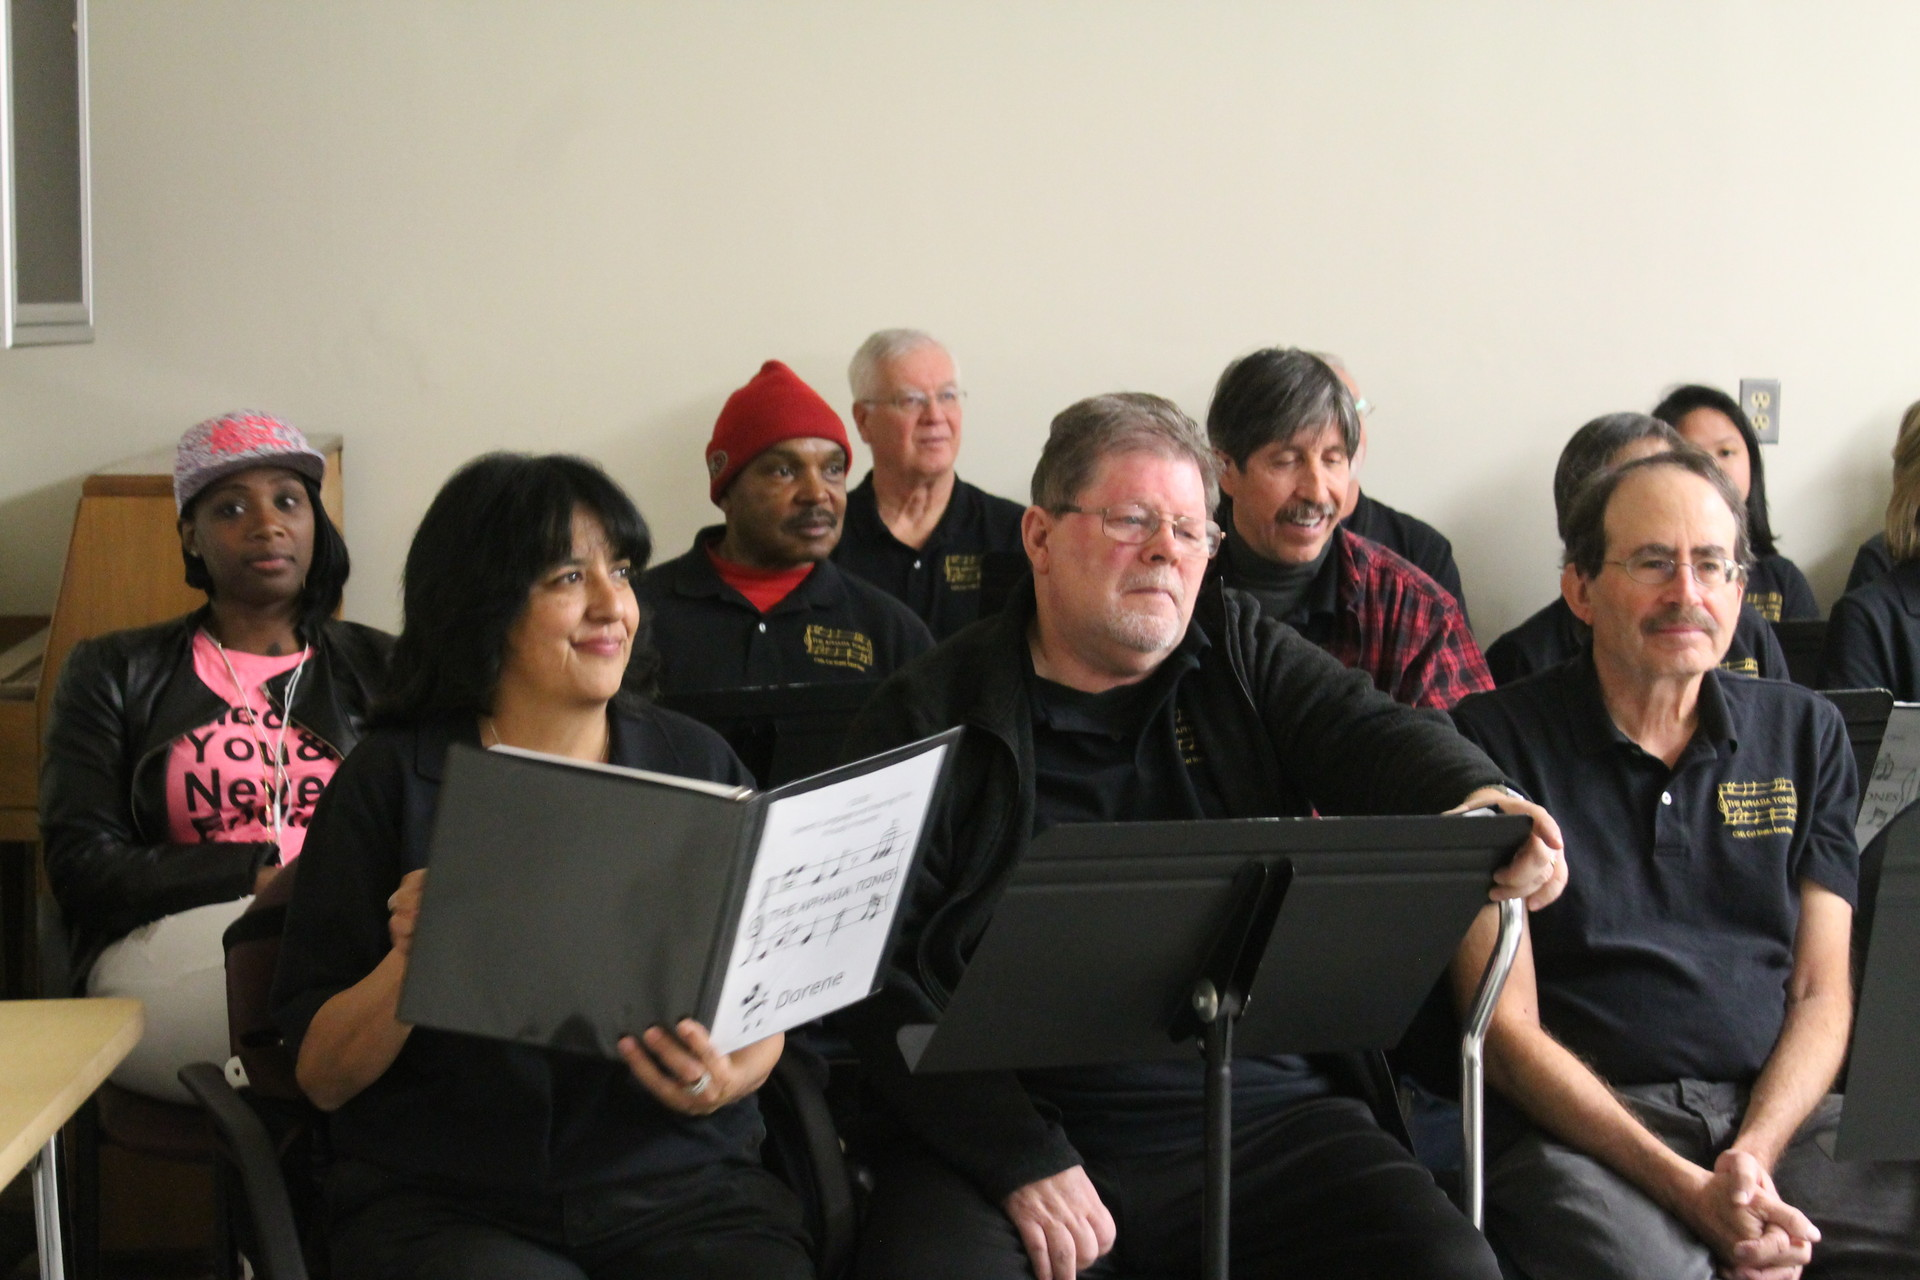 Members of the Aphasia Tones, a choir for people with aphasia, perform at their end-of-semester event at CSU East Bay in Hayward.